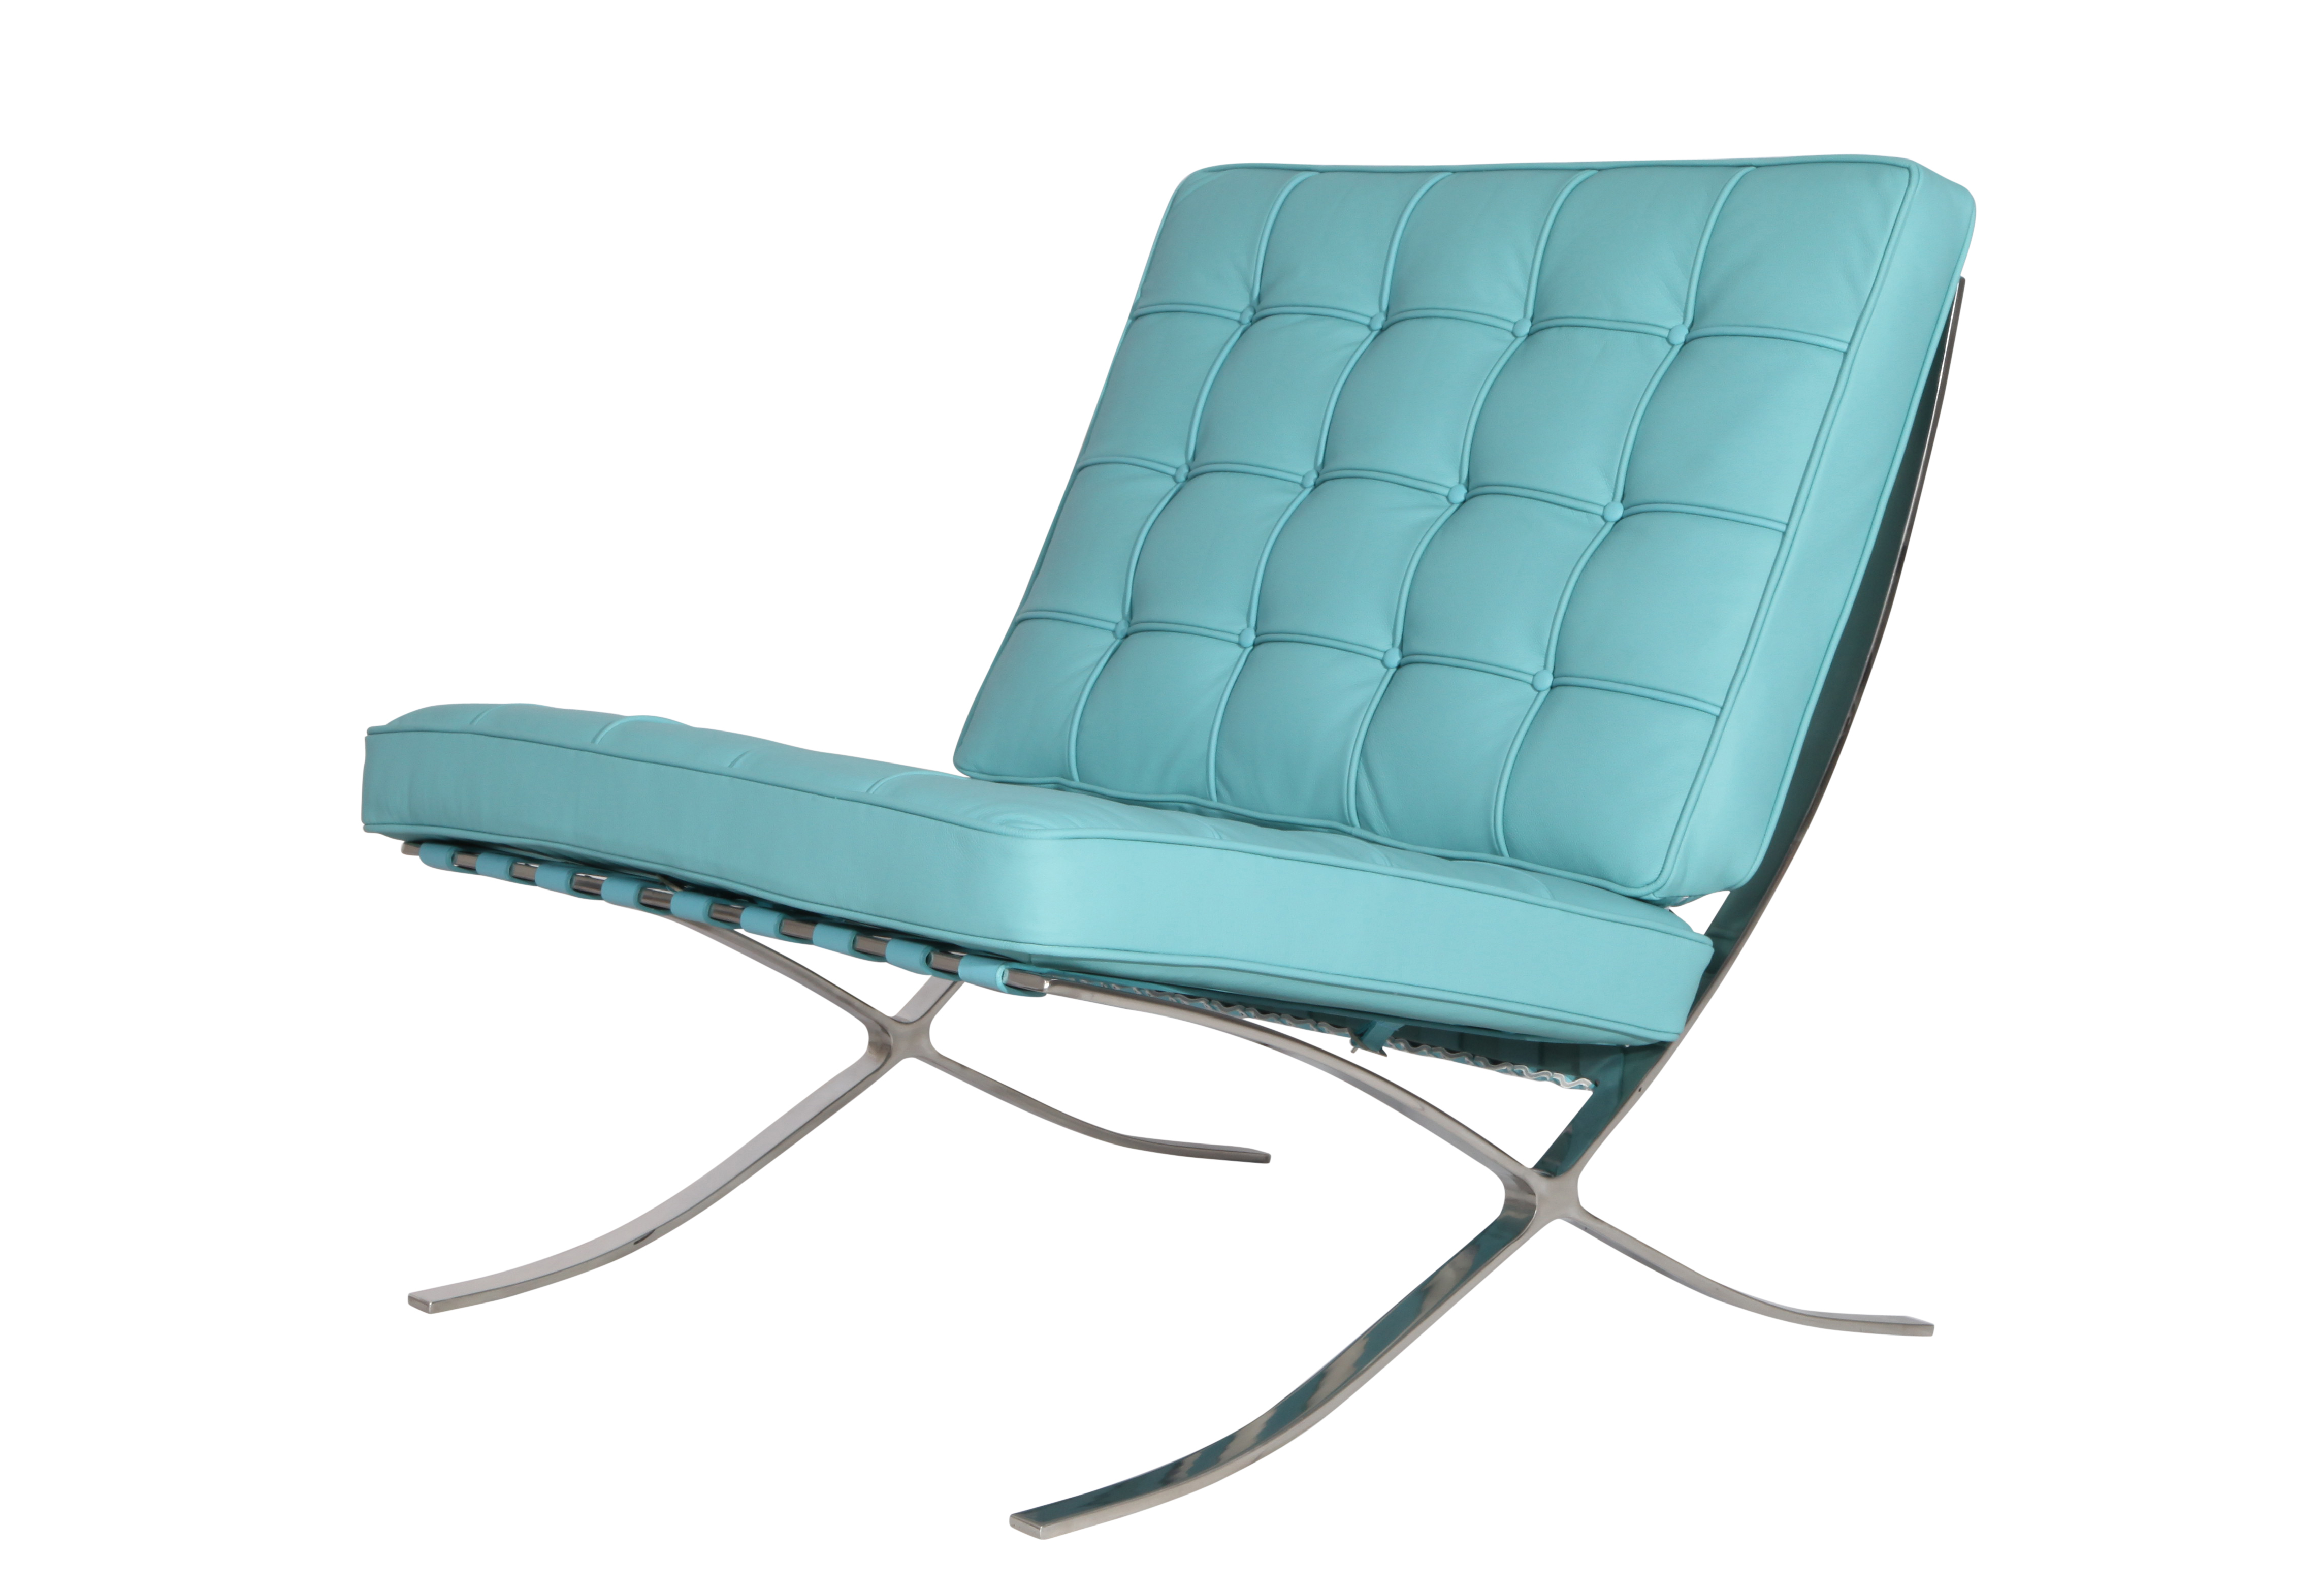 Barcelona Lounge Chair Barcelona Lounge Chair Baby Blue Design District Mid